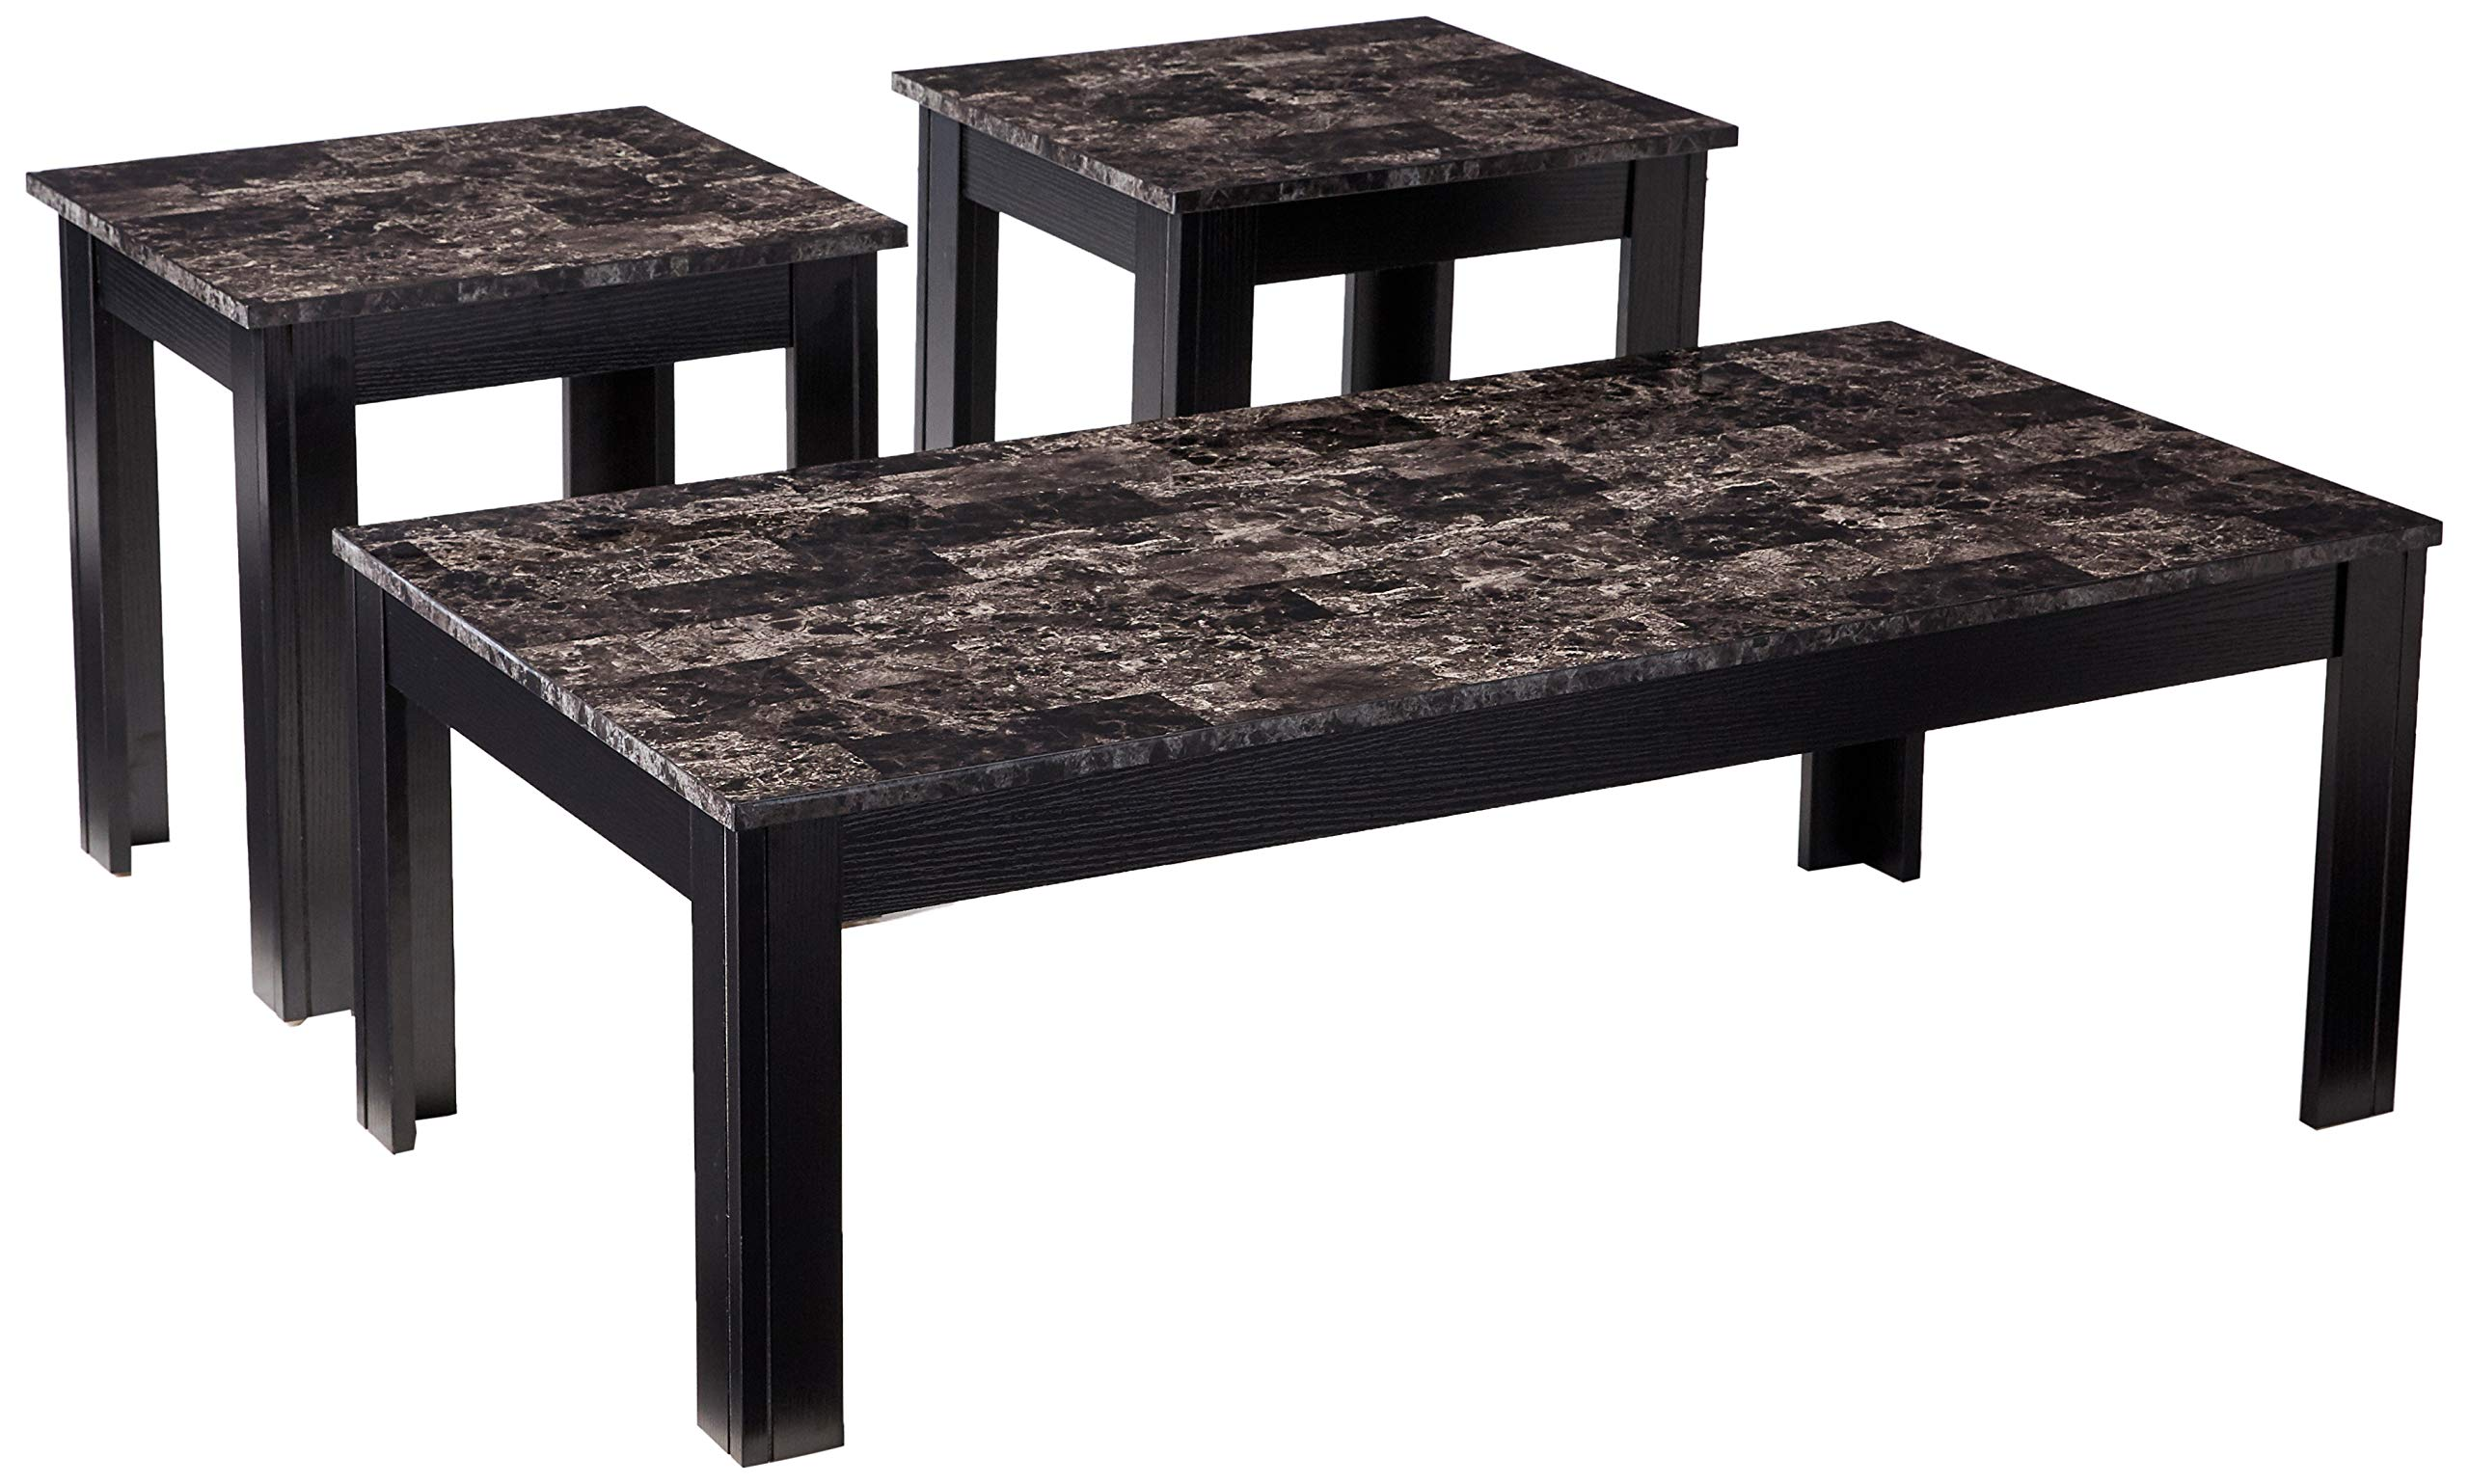 Coaster Home Furnishings 700375 3-Piece Occasional Table Set with Marble-Looking Top, Black by Coaster Home Furnishings